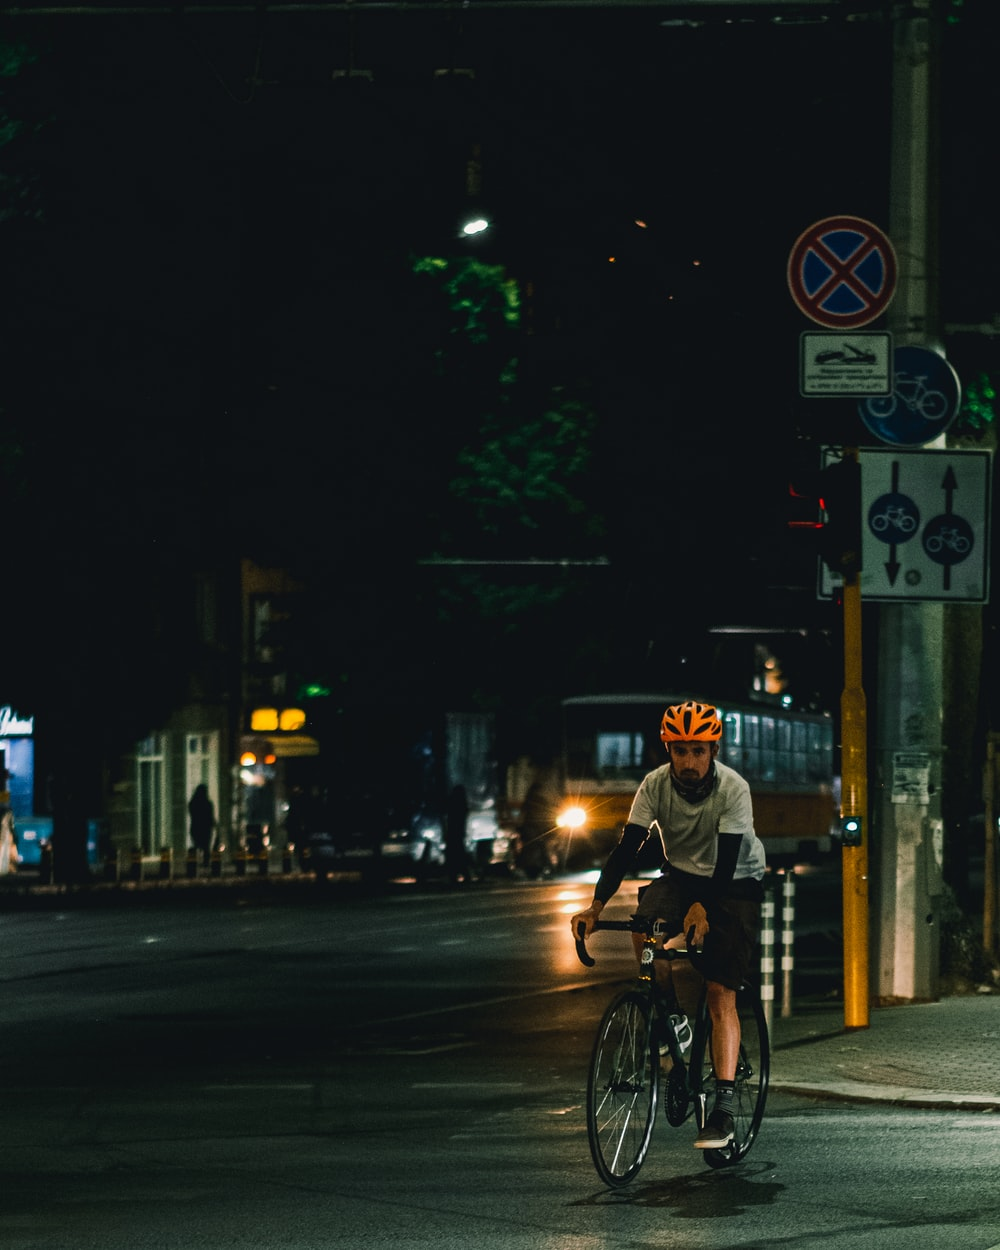 man in black jacket riding bicycle on road during night time